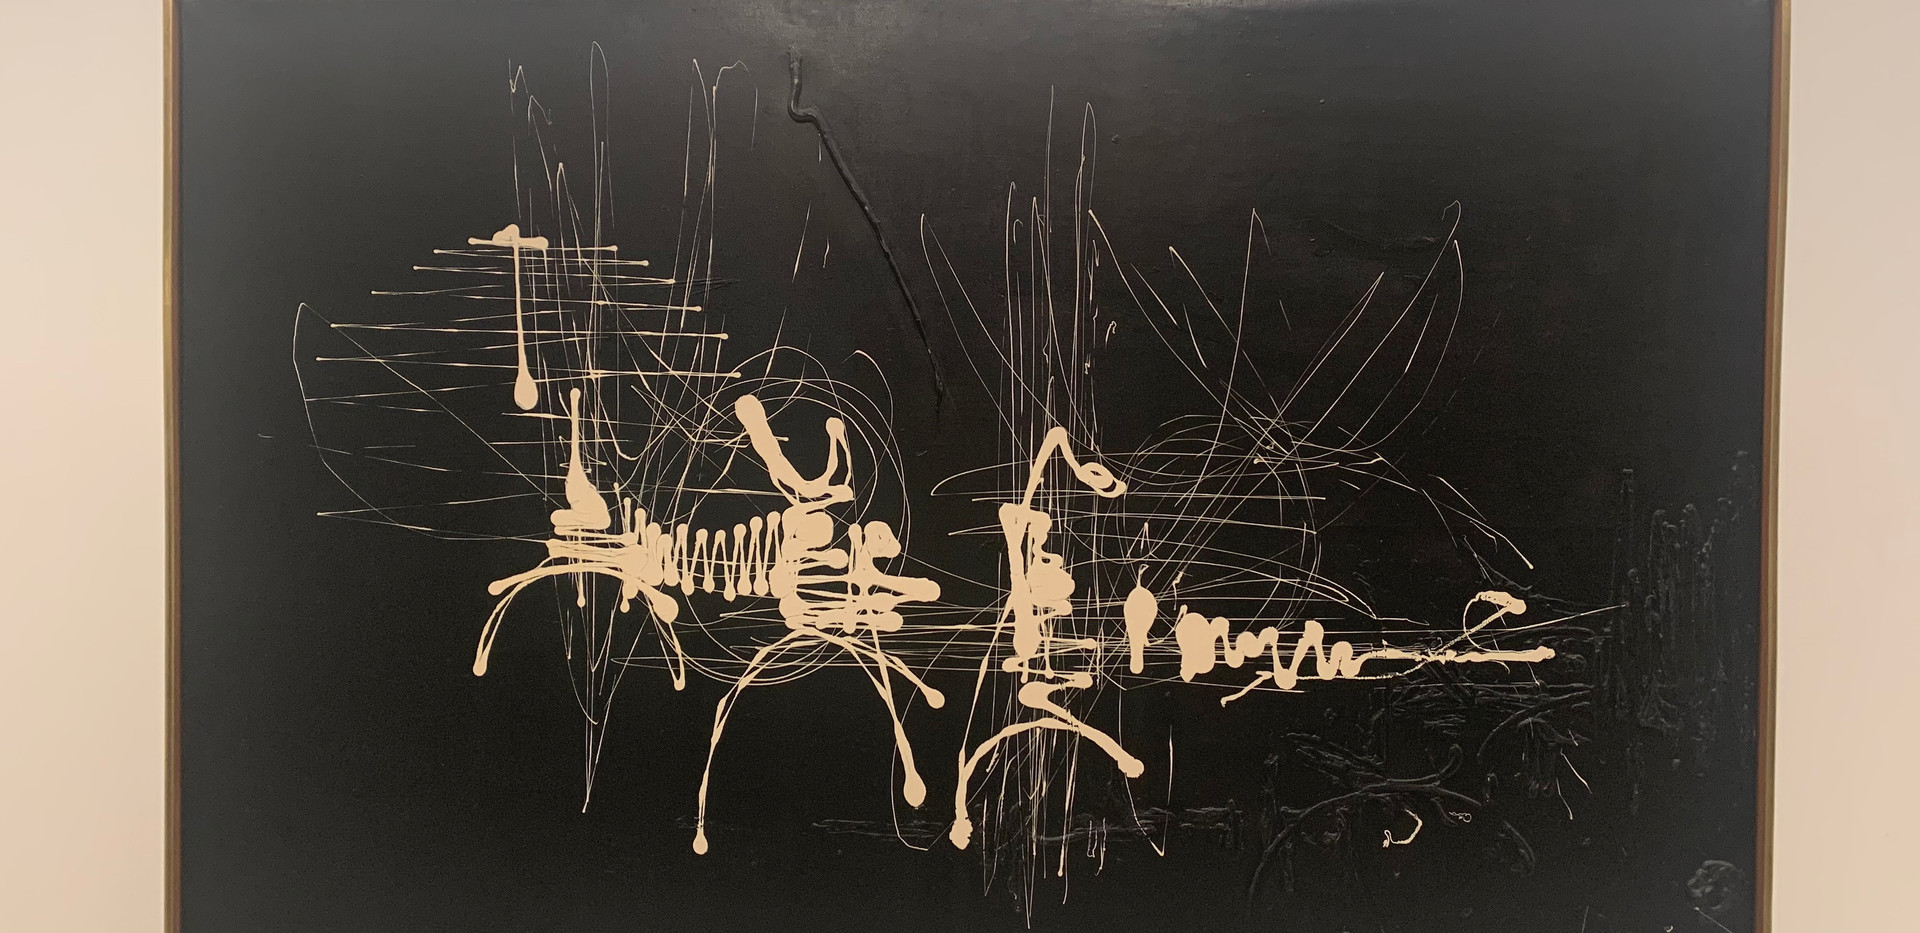 George Mathieu, Black and White Abstract (La mort de la Reine Edith), 1957